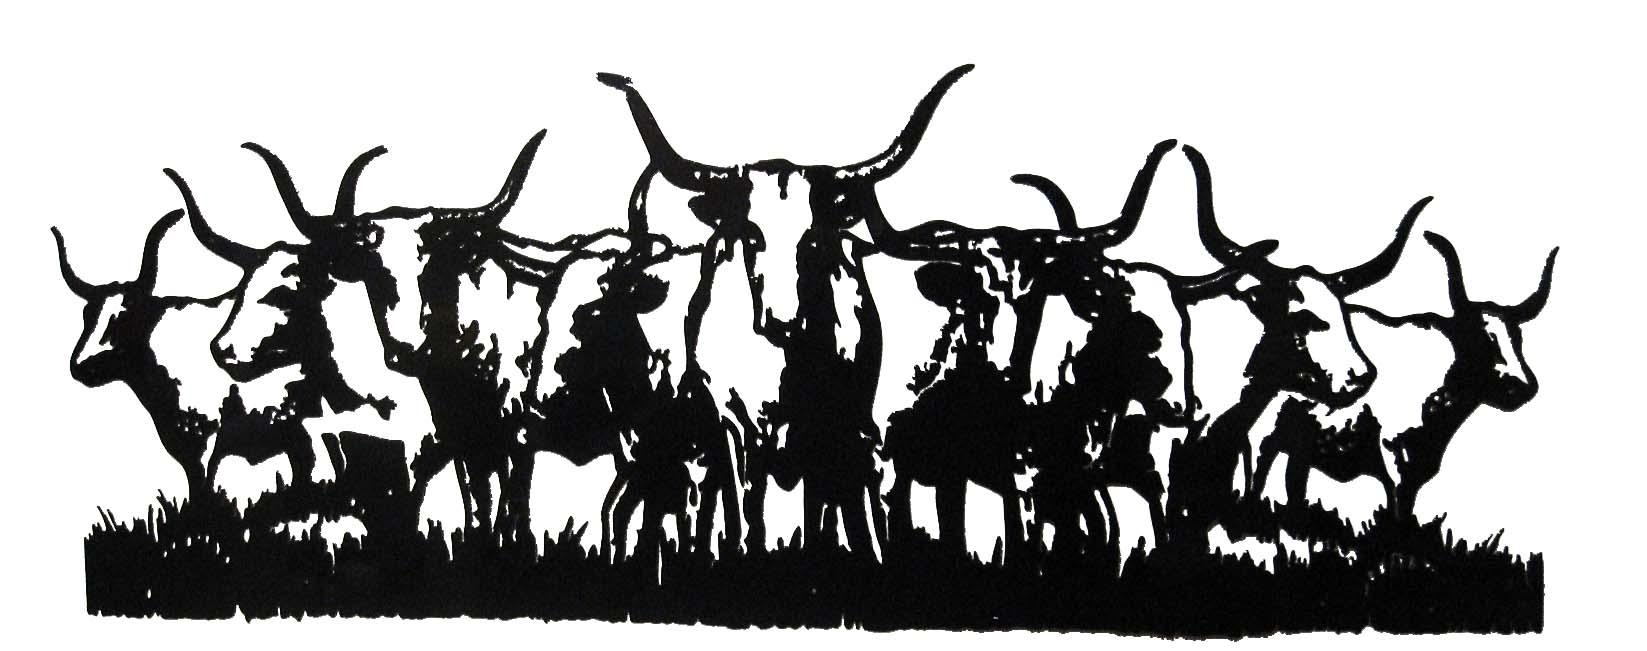 Featured Image of Western Metal Wall Art Silhouettes